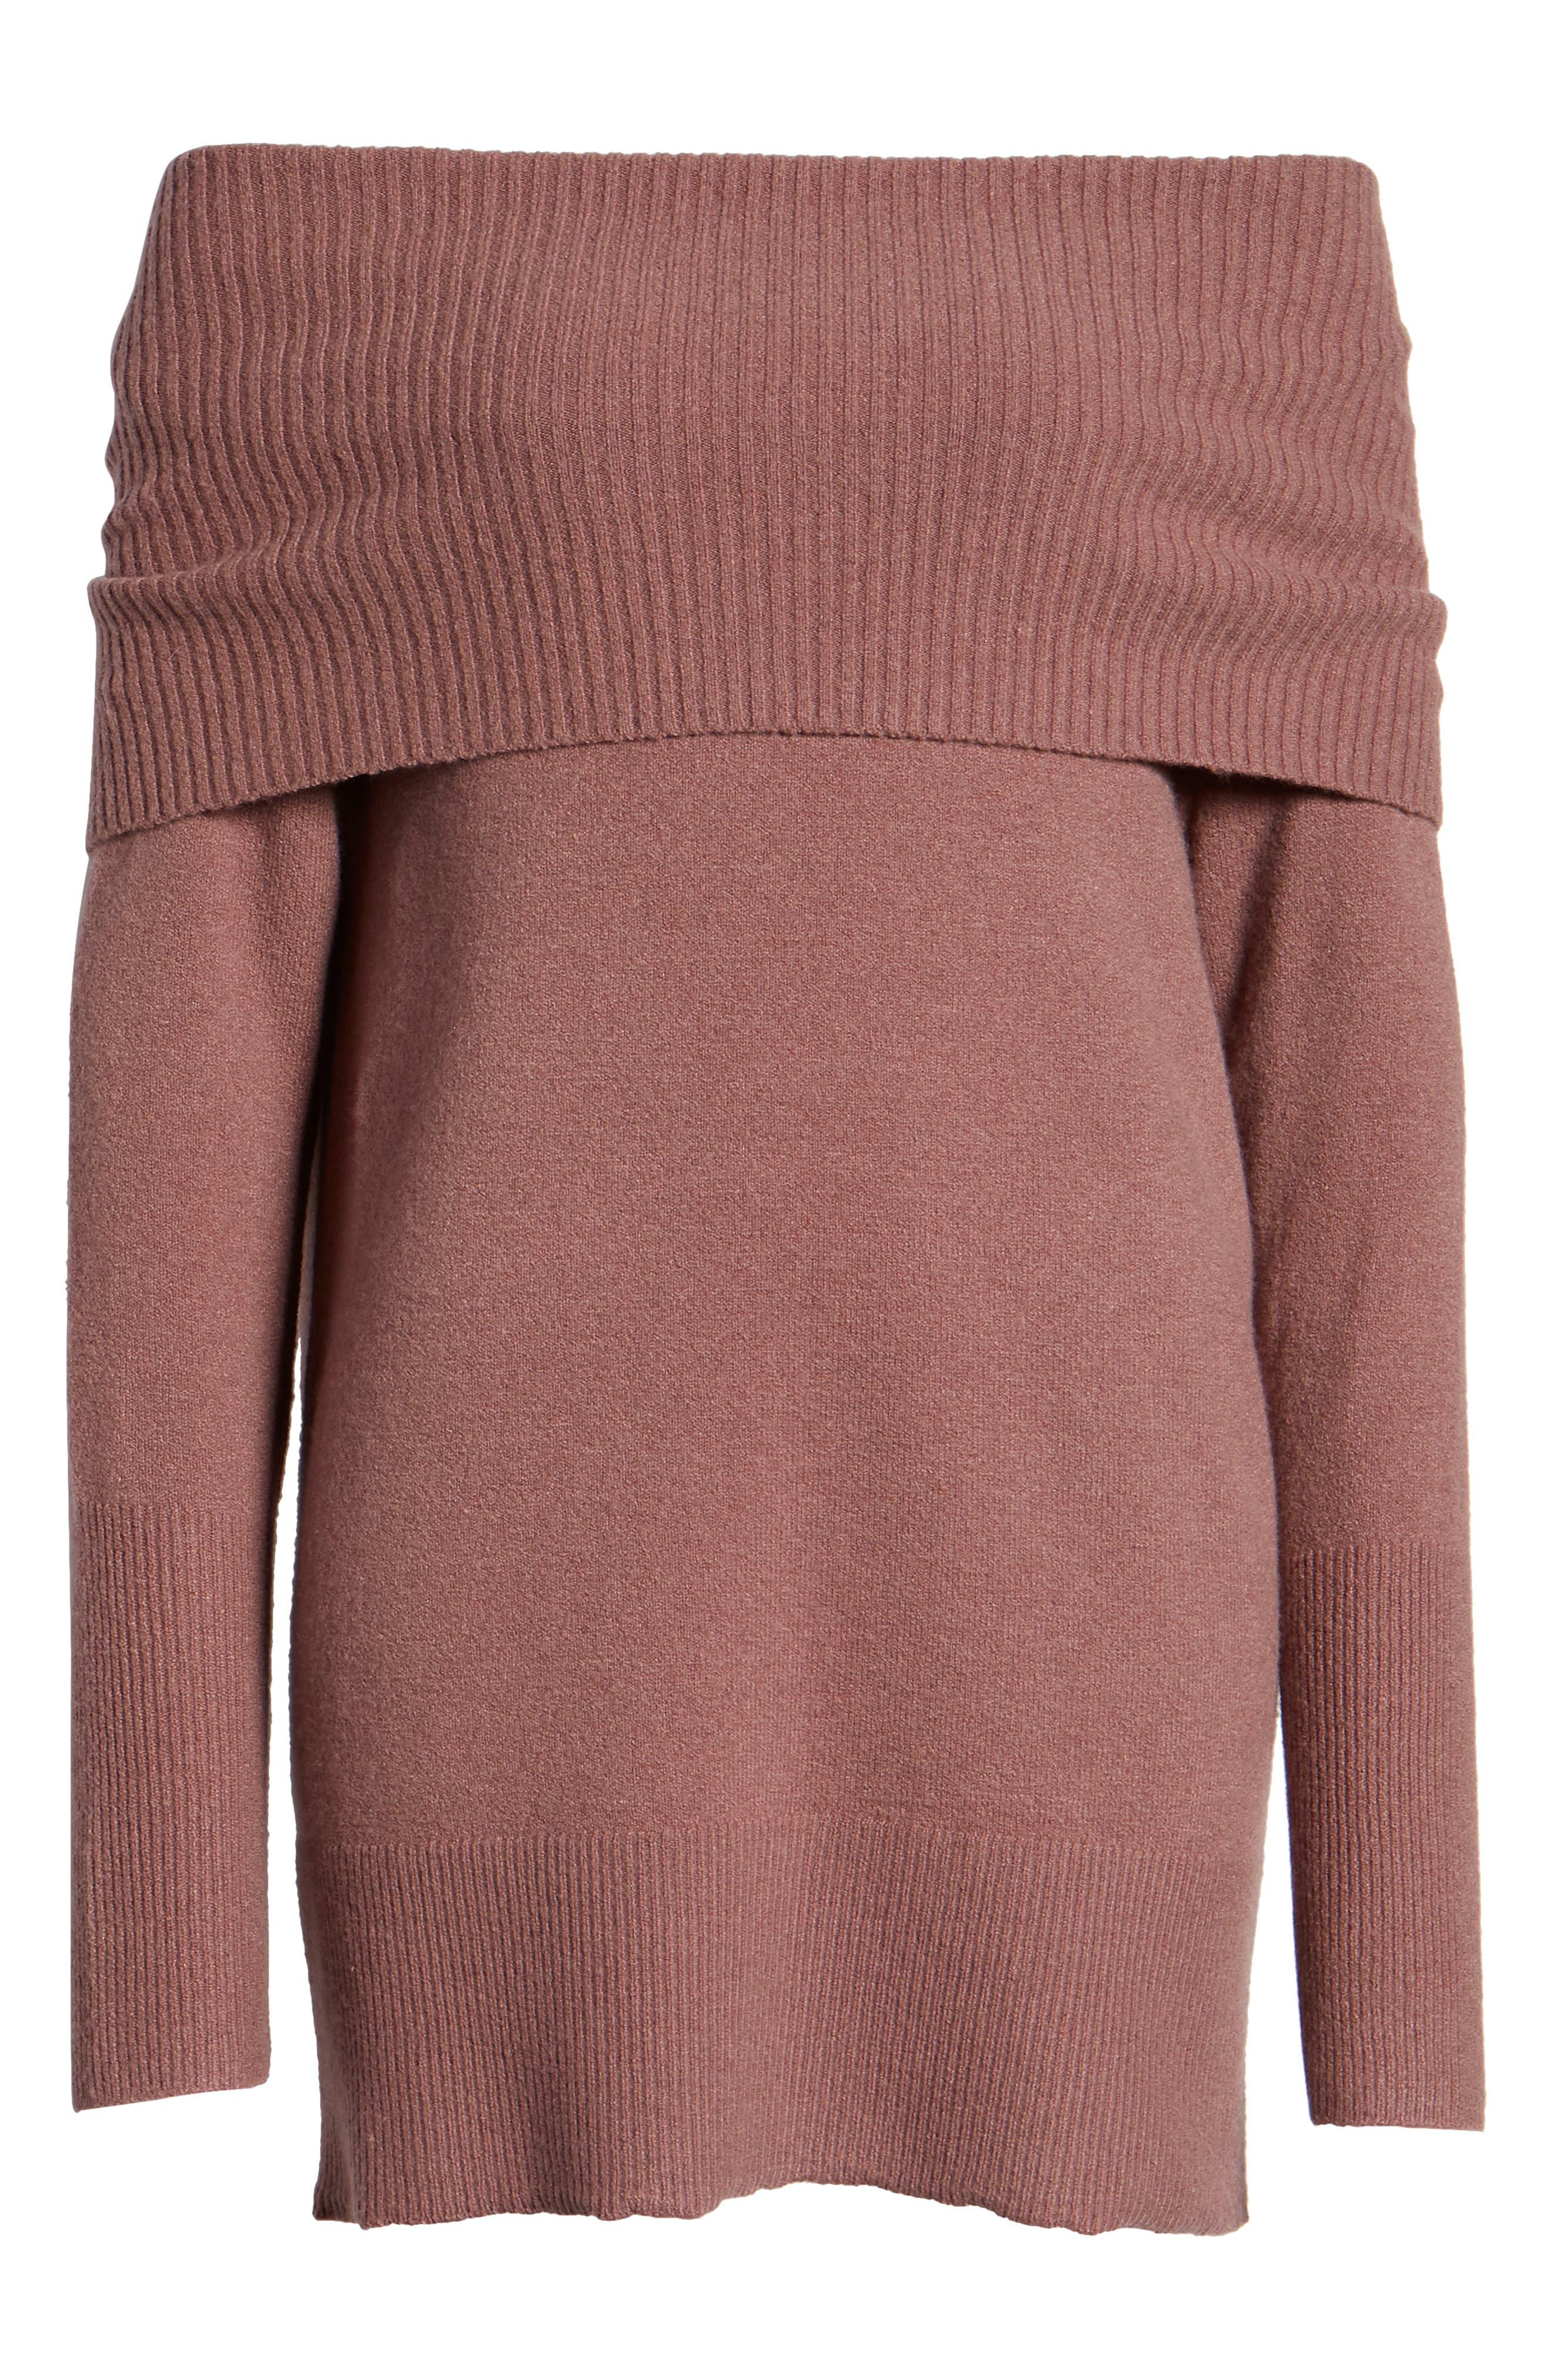 Convertible Neck Sweater,                             Alternate thumbnail 6, color,                             PURPLE TAUPE